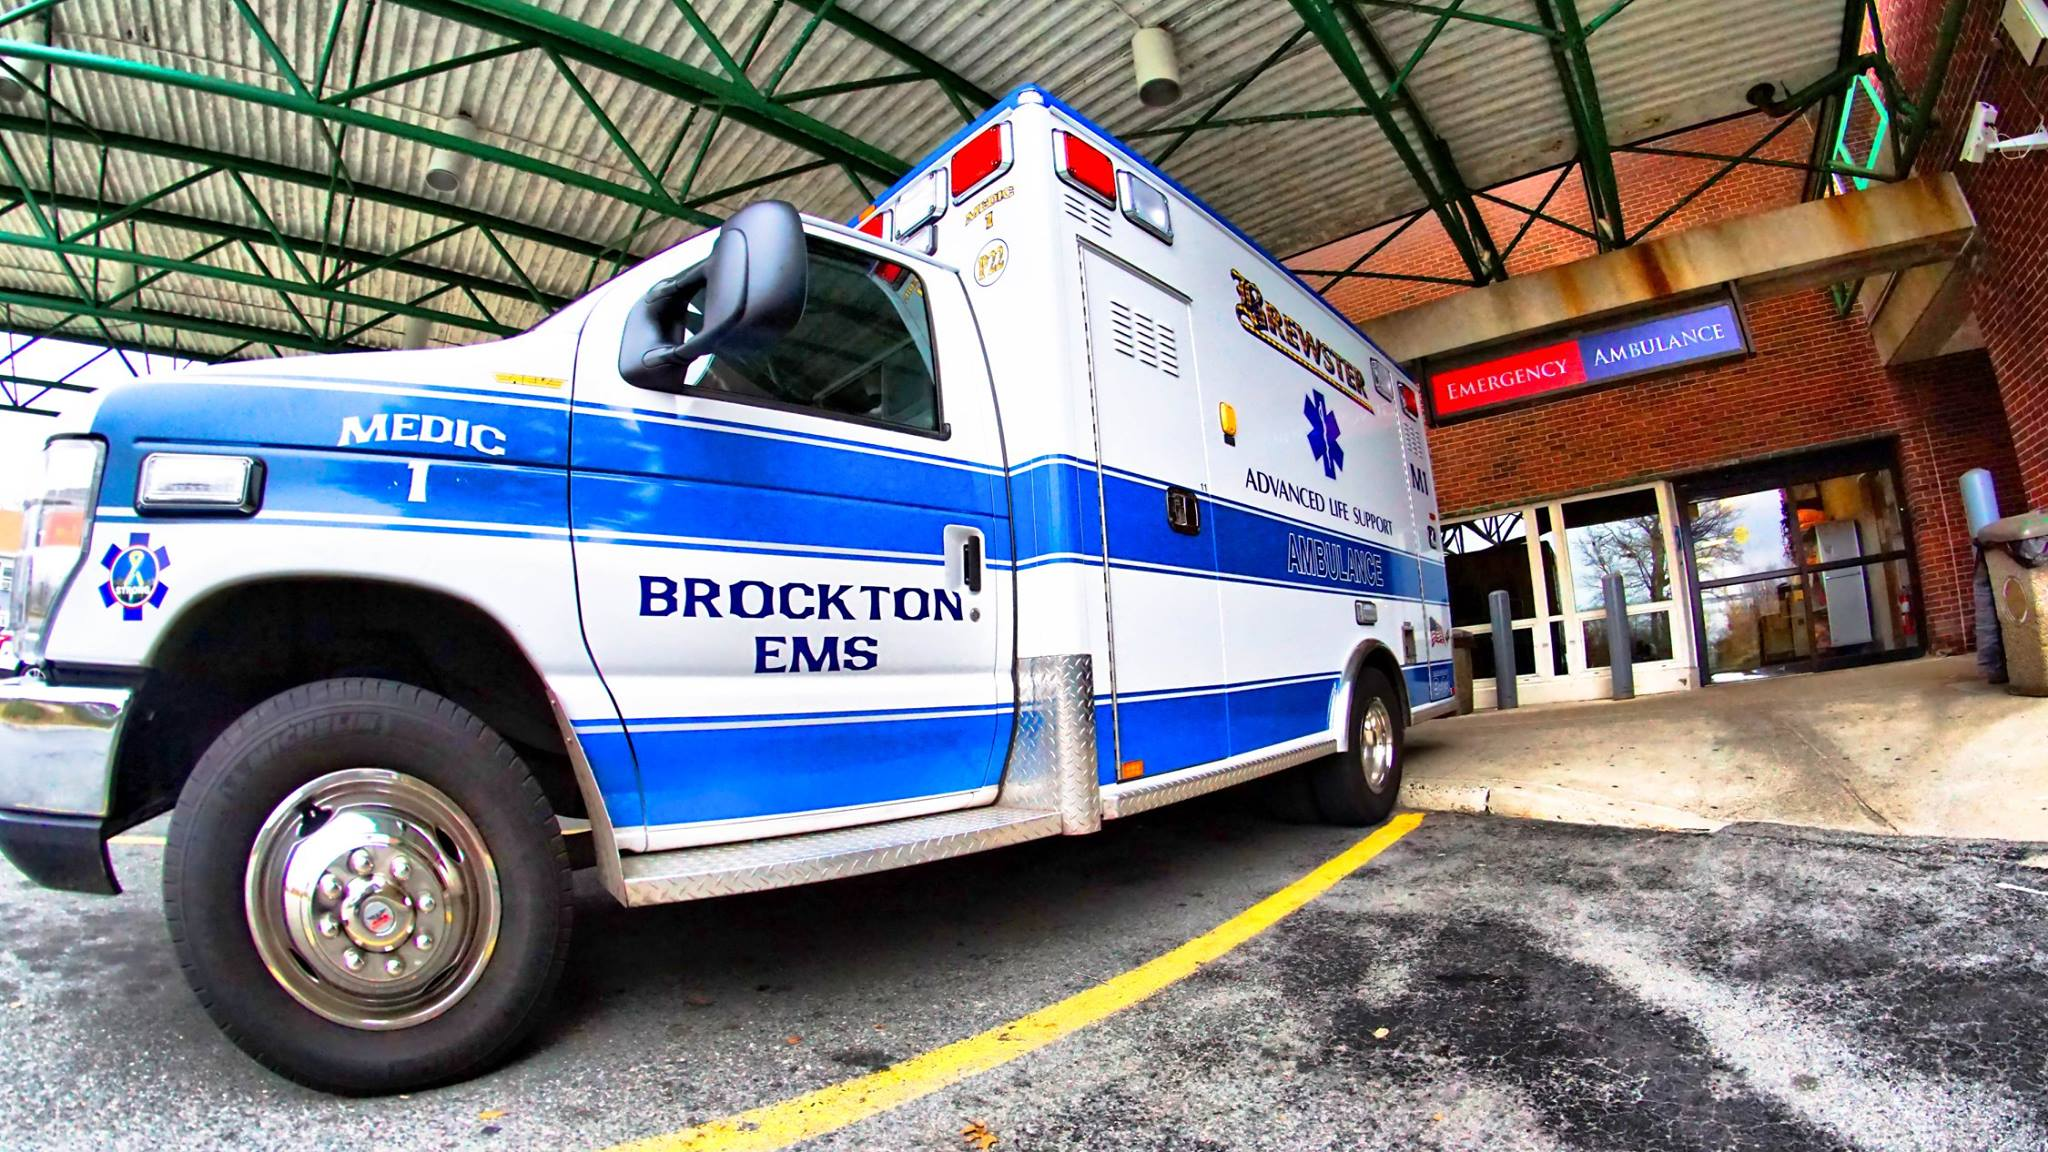 Brockton ALS ambulance